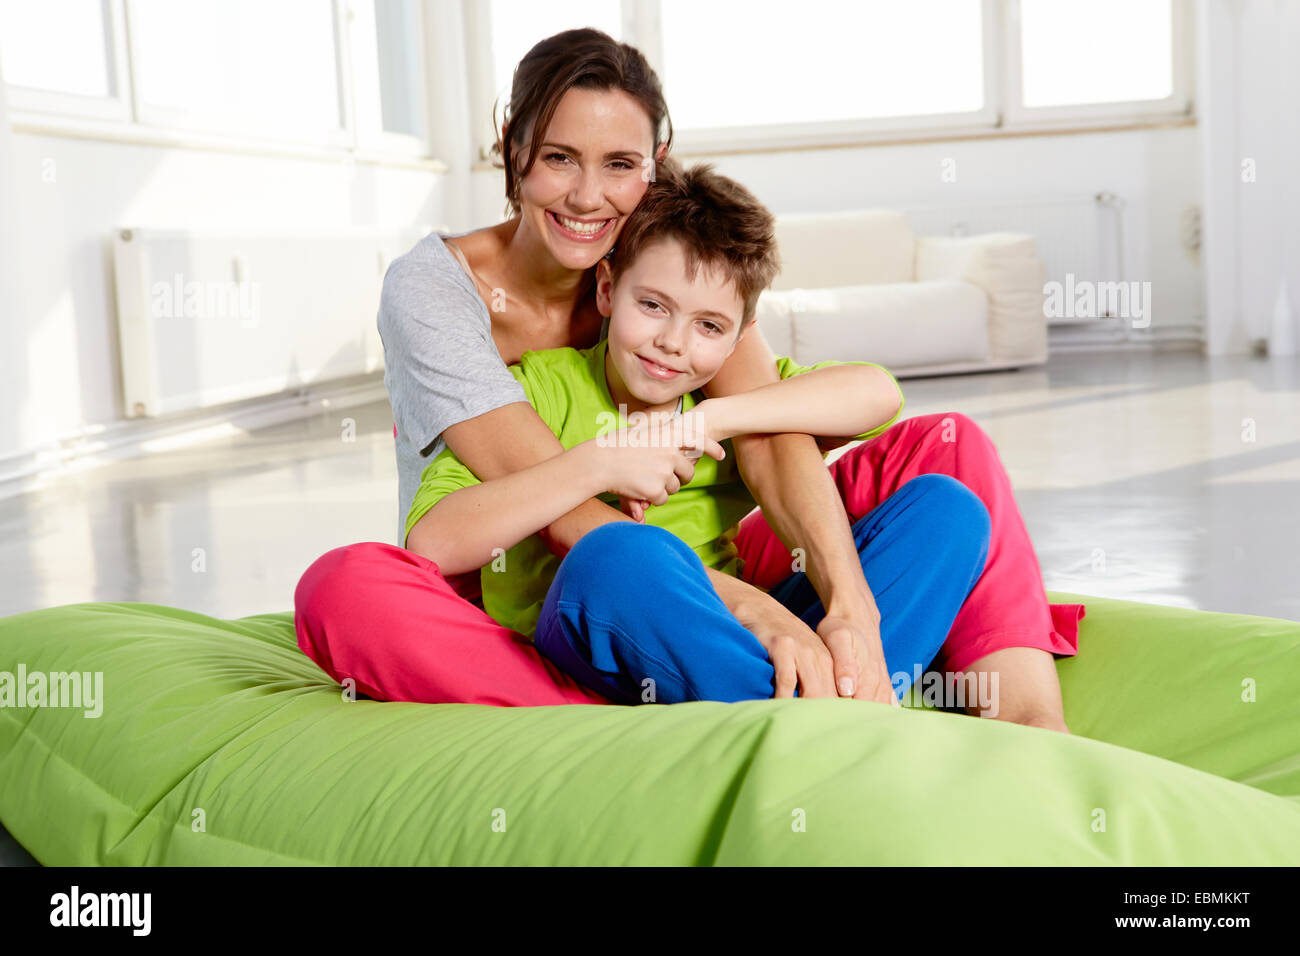 Mother and son in casual clothes sitting on a beanbag in a loft, Germany - Stock Image